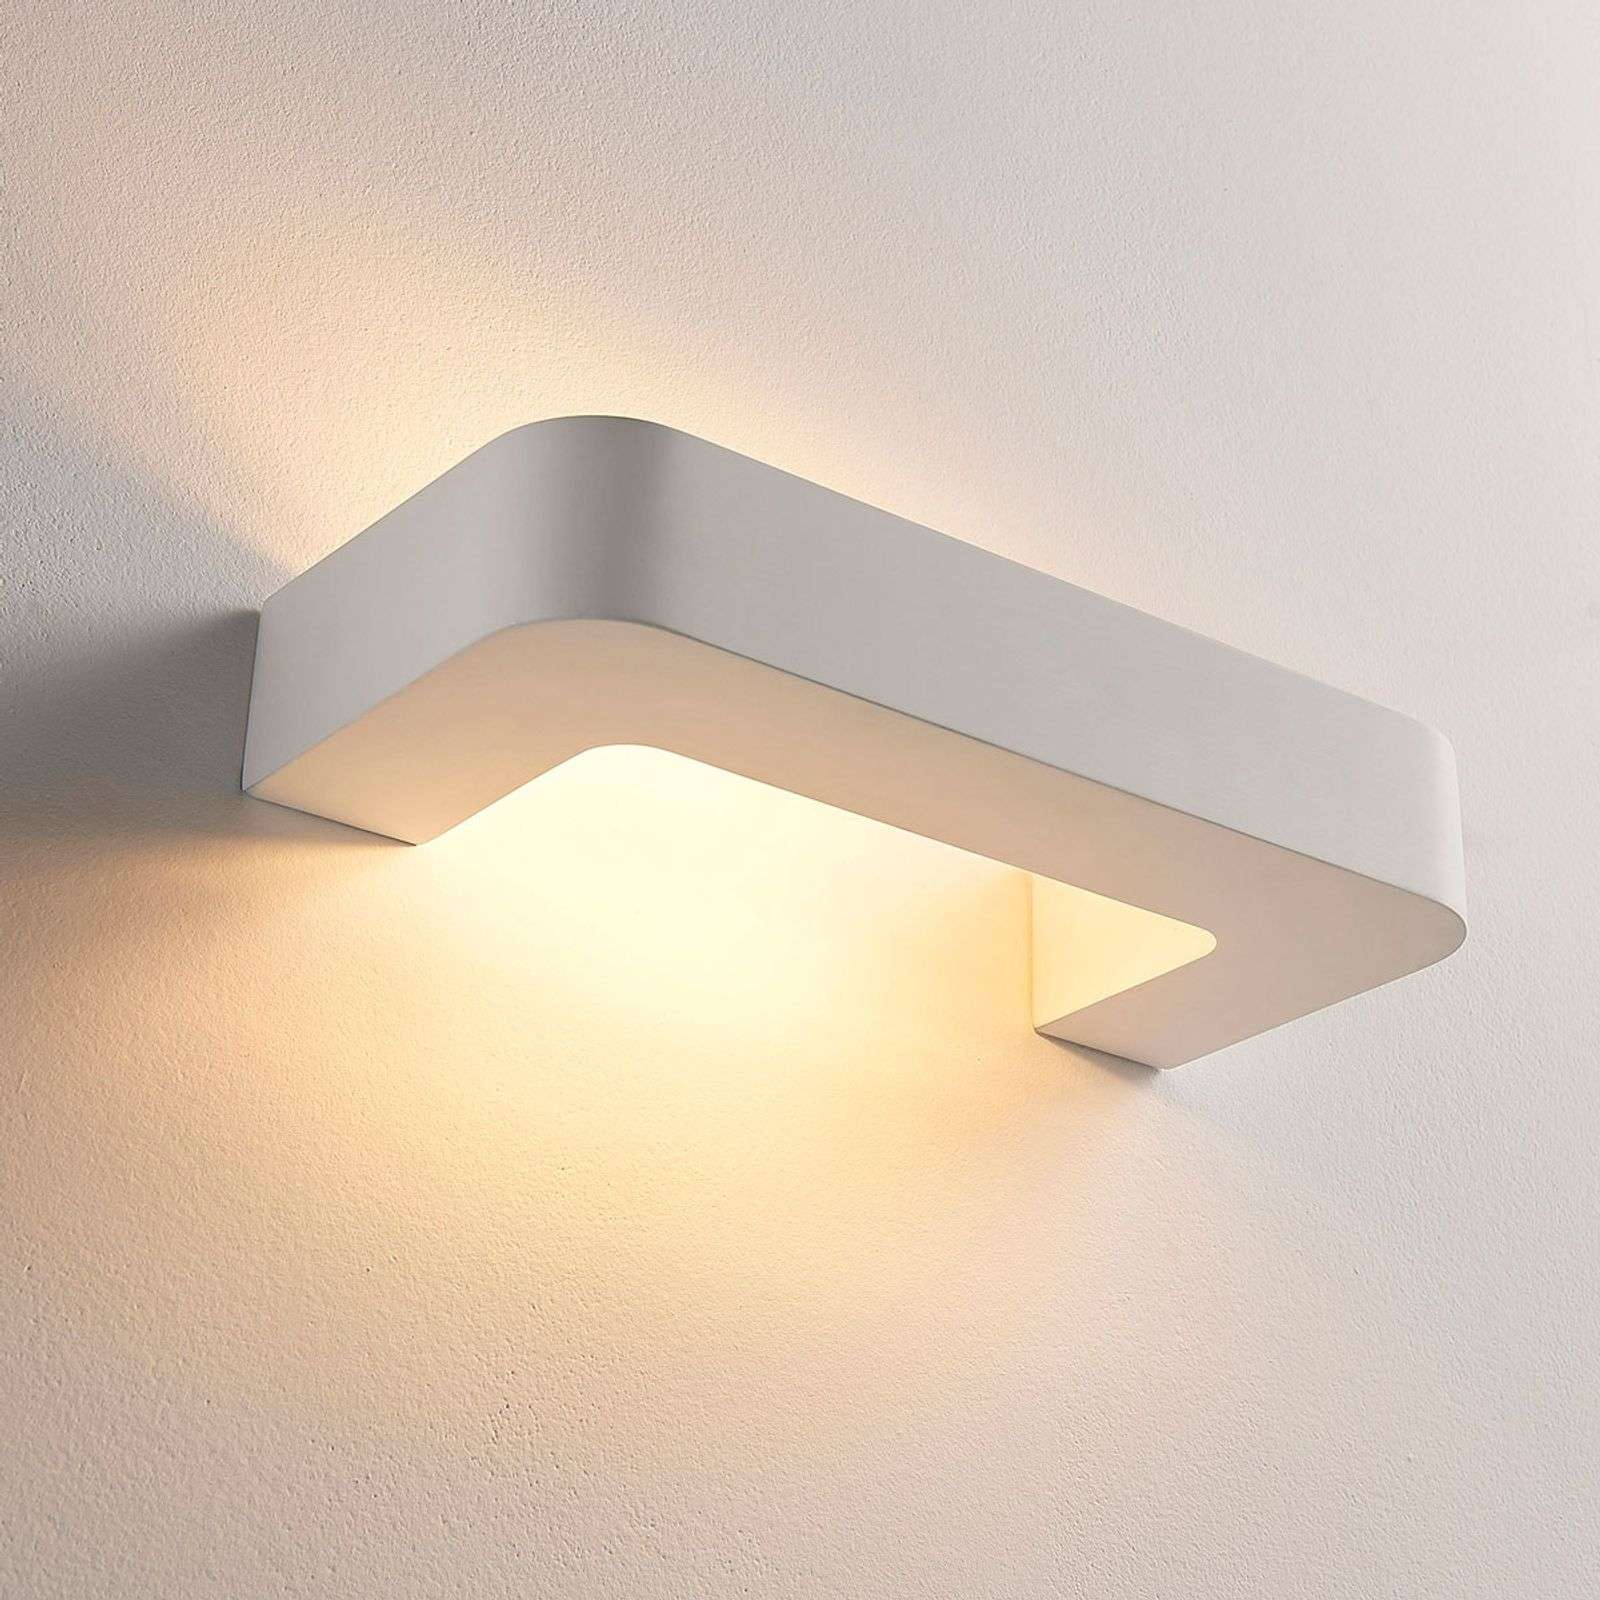 Applique LED Julika di gesso a forma di staffa